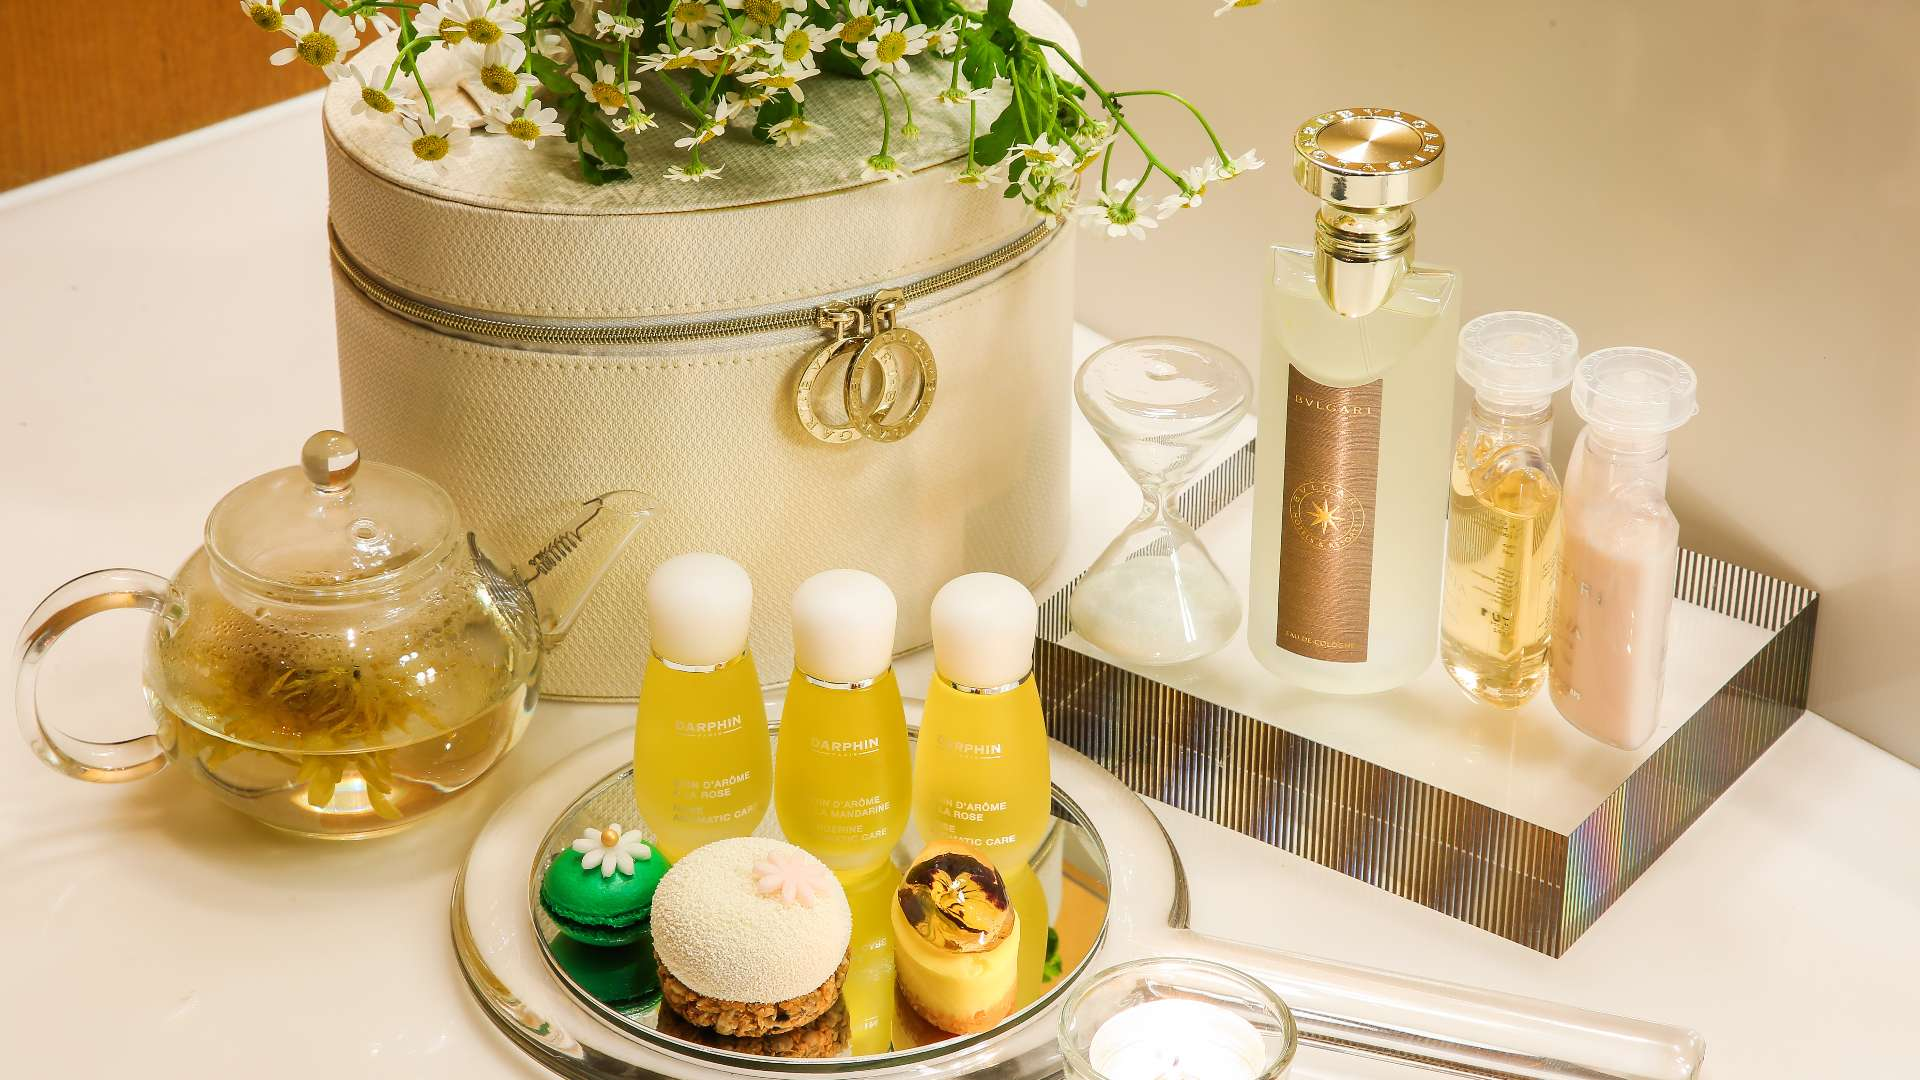 Spa table with cosmetics